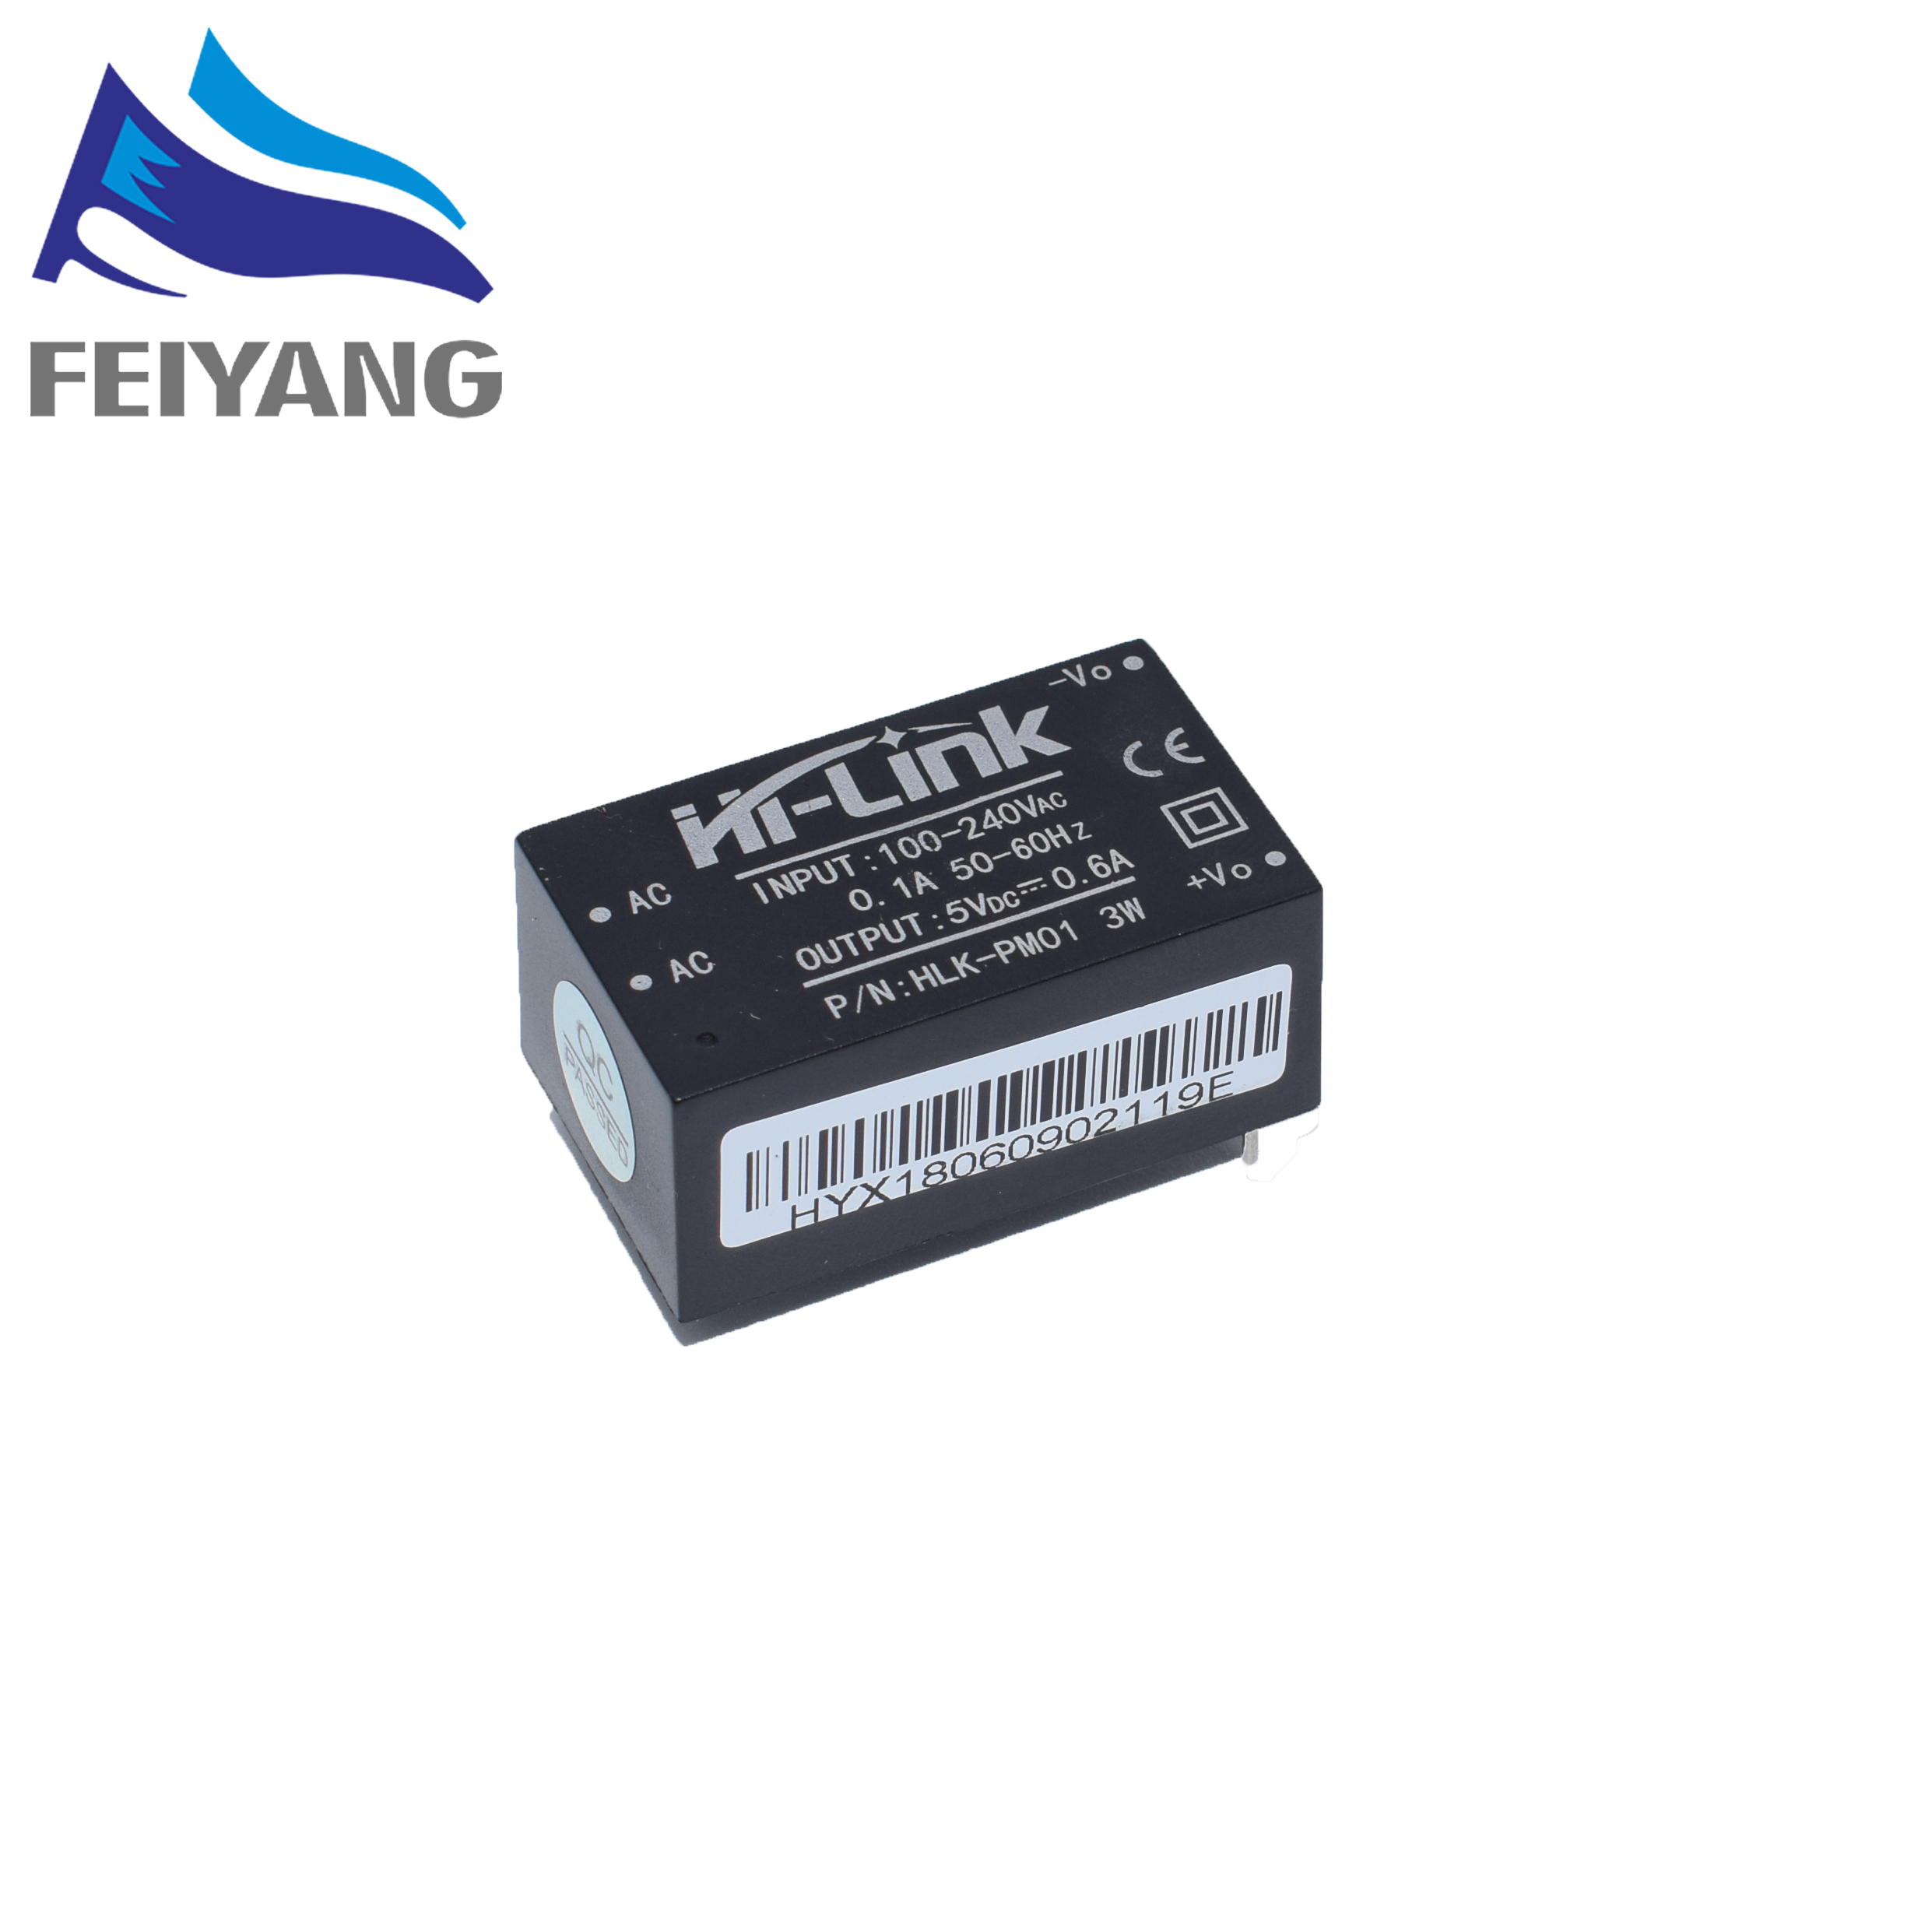 1pcs HLK-PM01 AC-DC 220V To 5V Mini Power Supply Module,intelligent Household Switch Power Supply Module